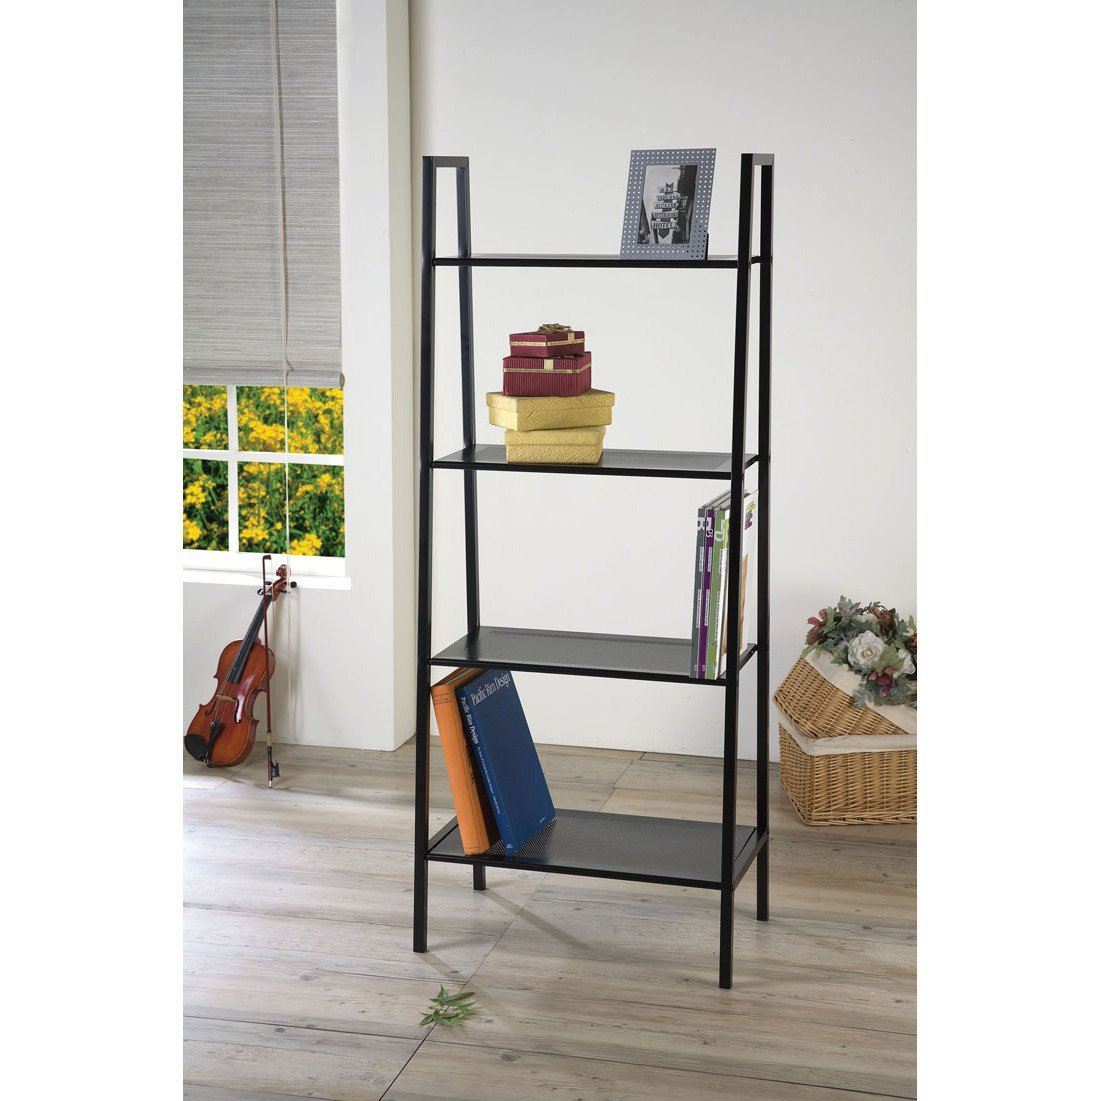 Bookcase Four-Tiered in Black Finish - 58 in High x 24 in Wide x 14 in Deep. Assembly Required